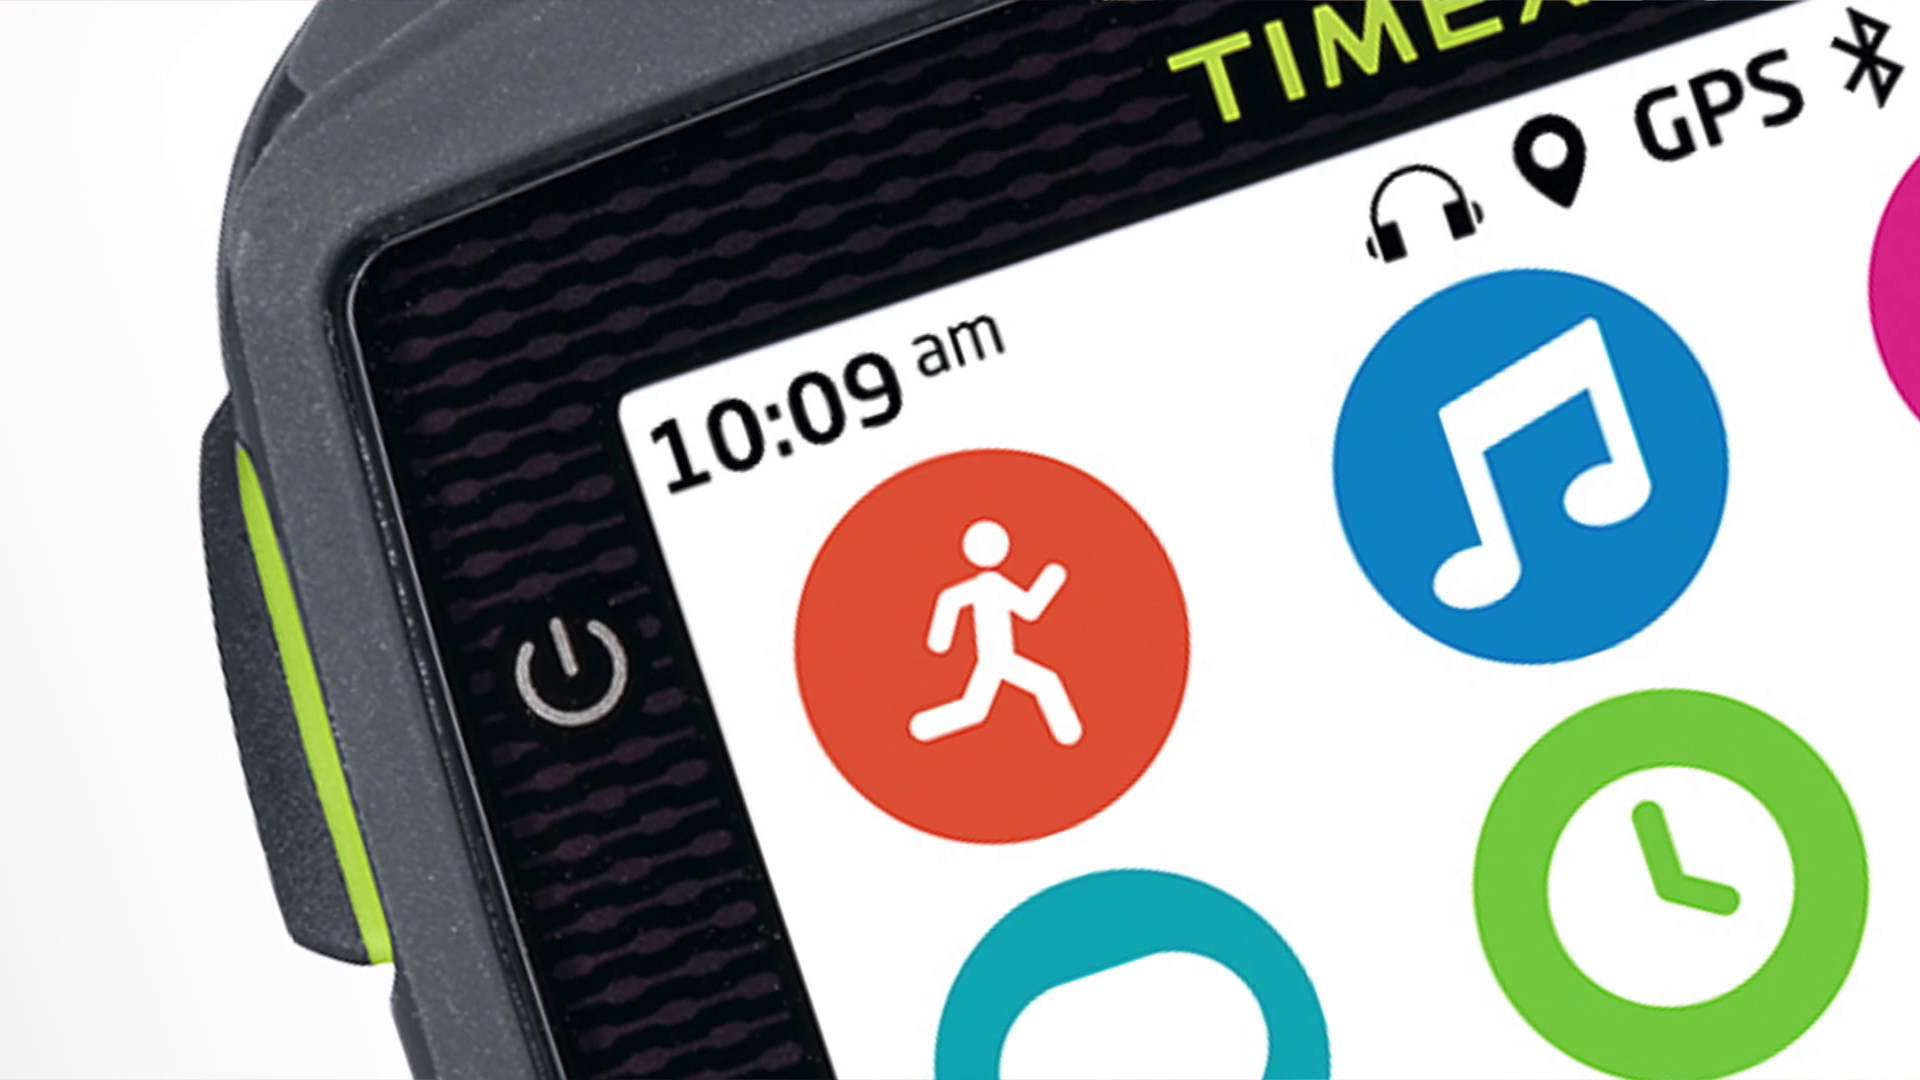 Now, even Timex has a smartwatch